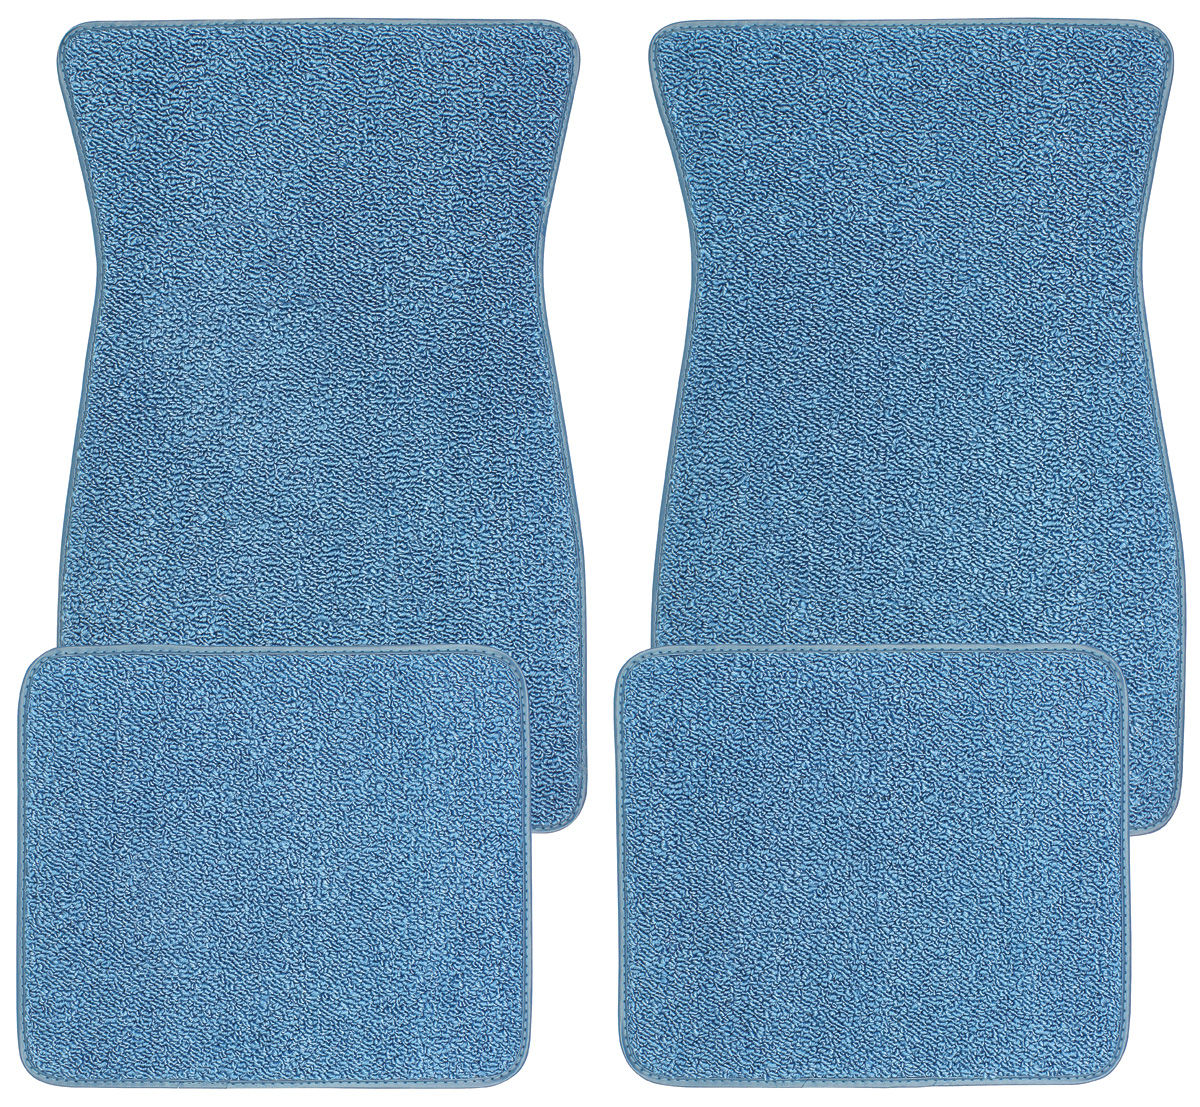 "Photo of Floor Mats, Carpet Matched Essex - Front And Rear ""454 SS"" w/red Bowtie"